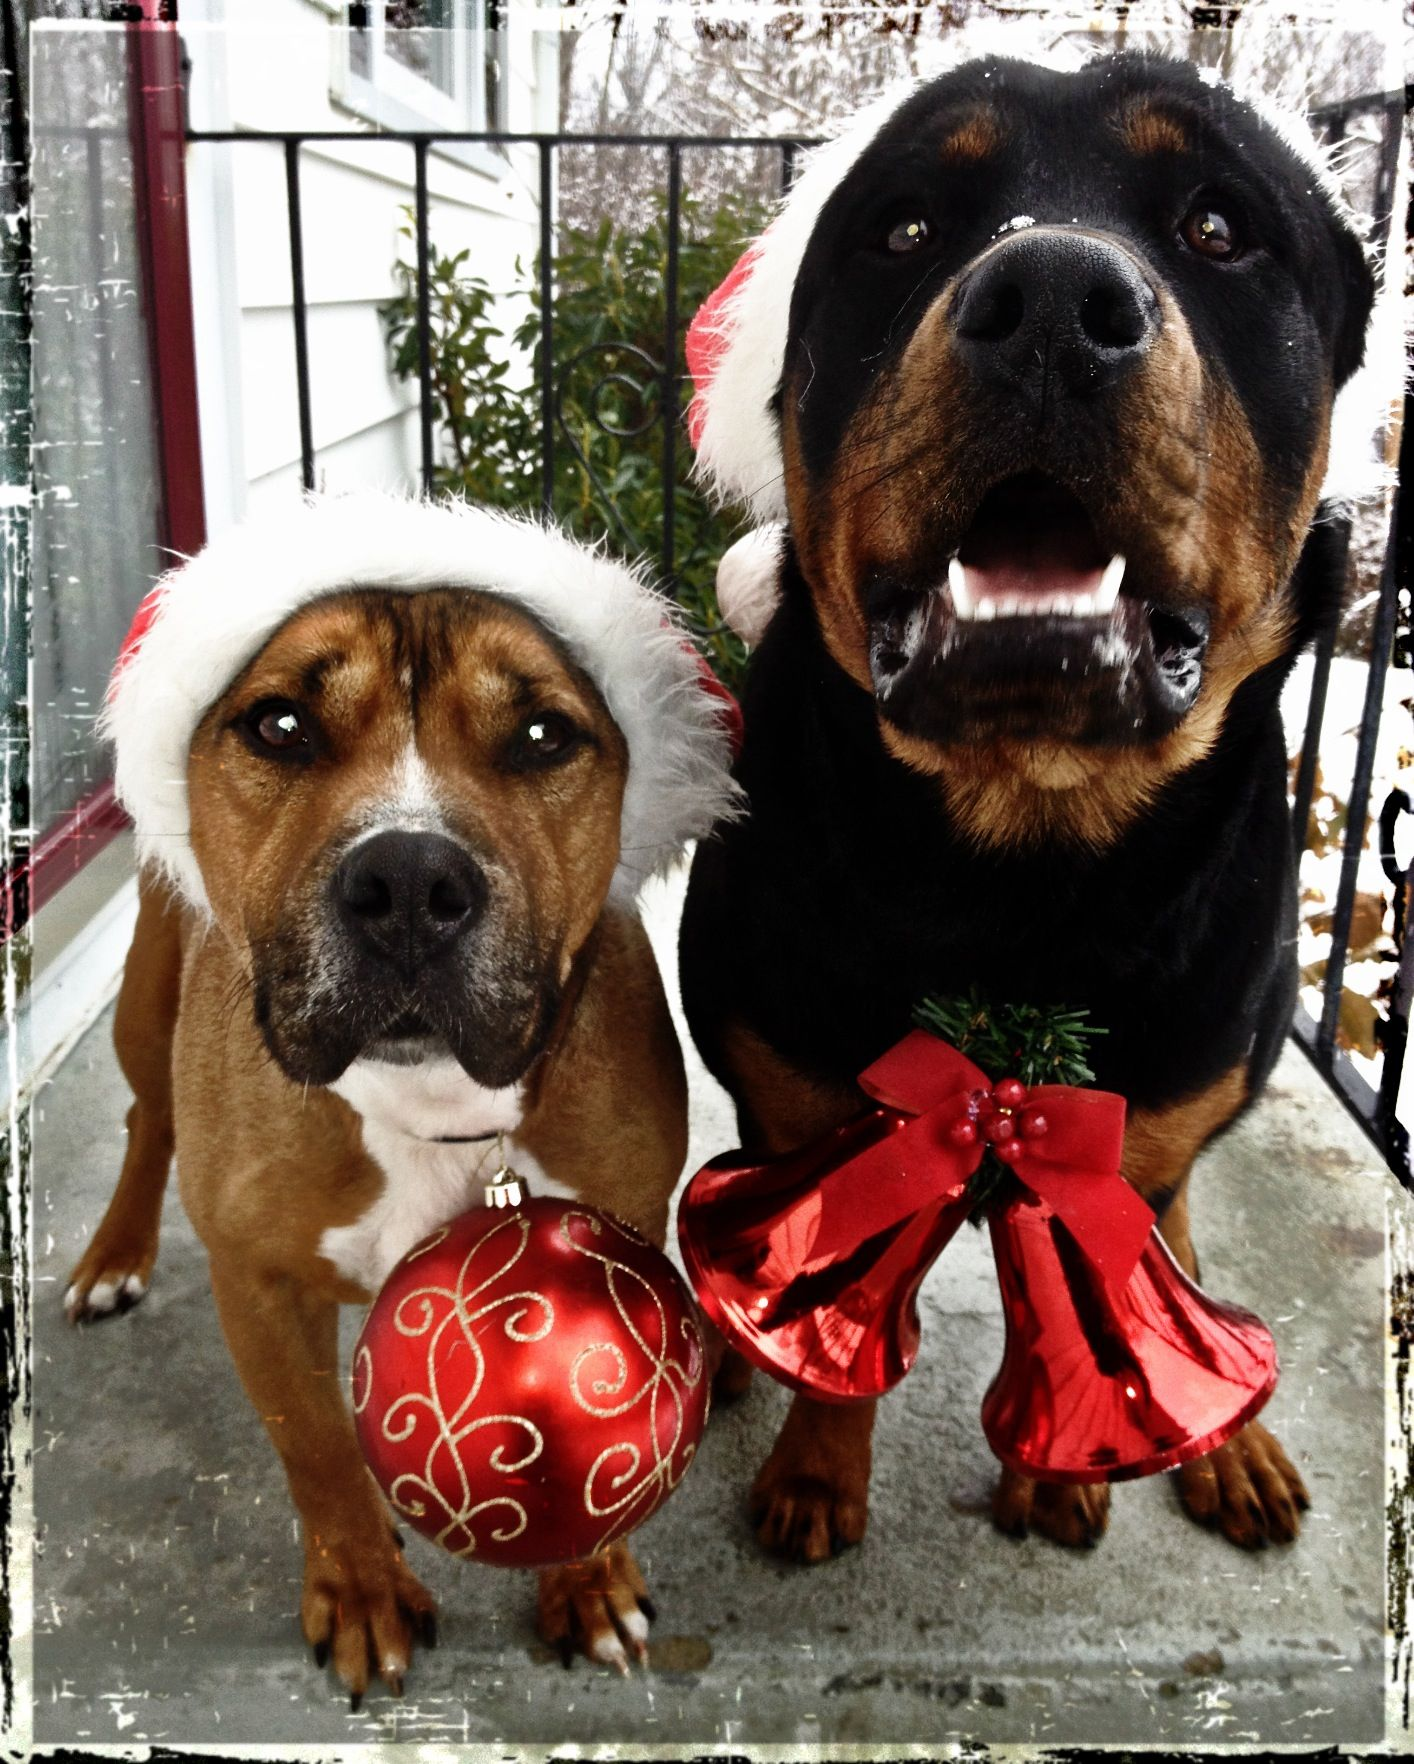 My rottie Bear and Staffy Joie showing some Christmas cheer! | My ...